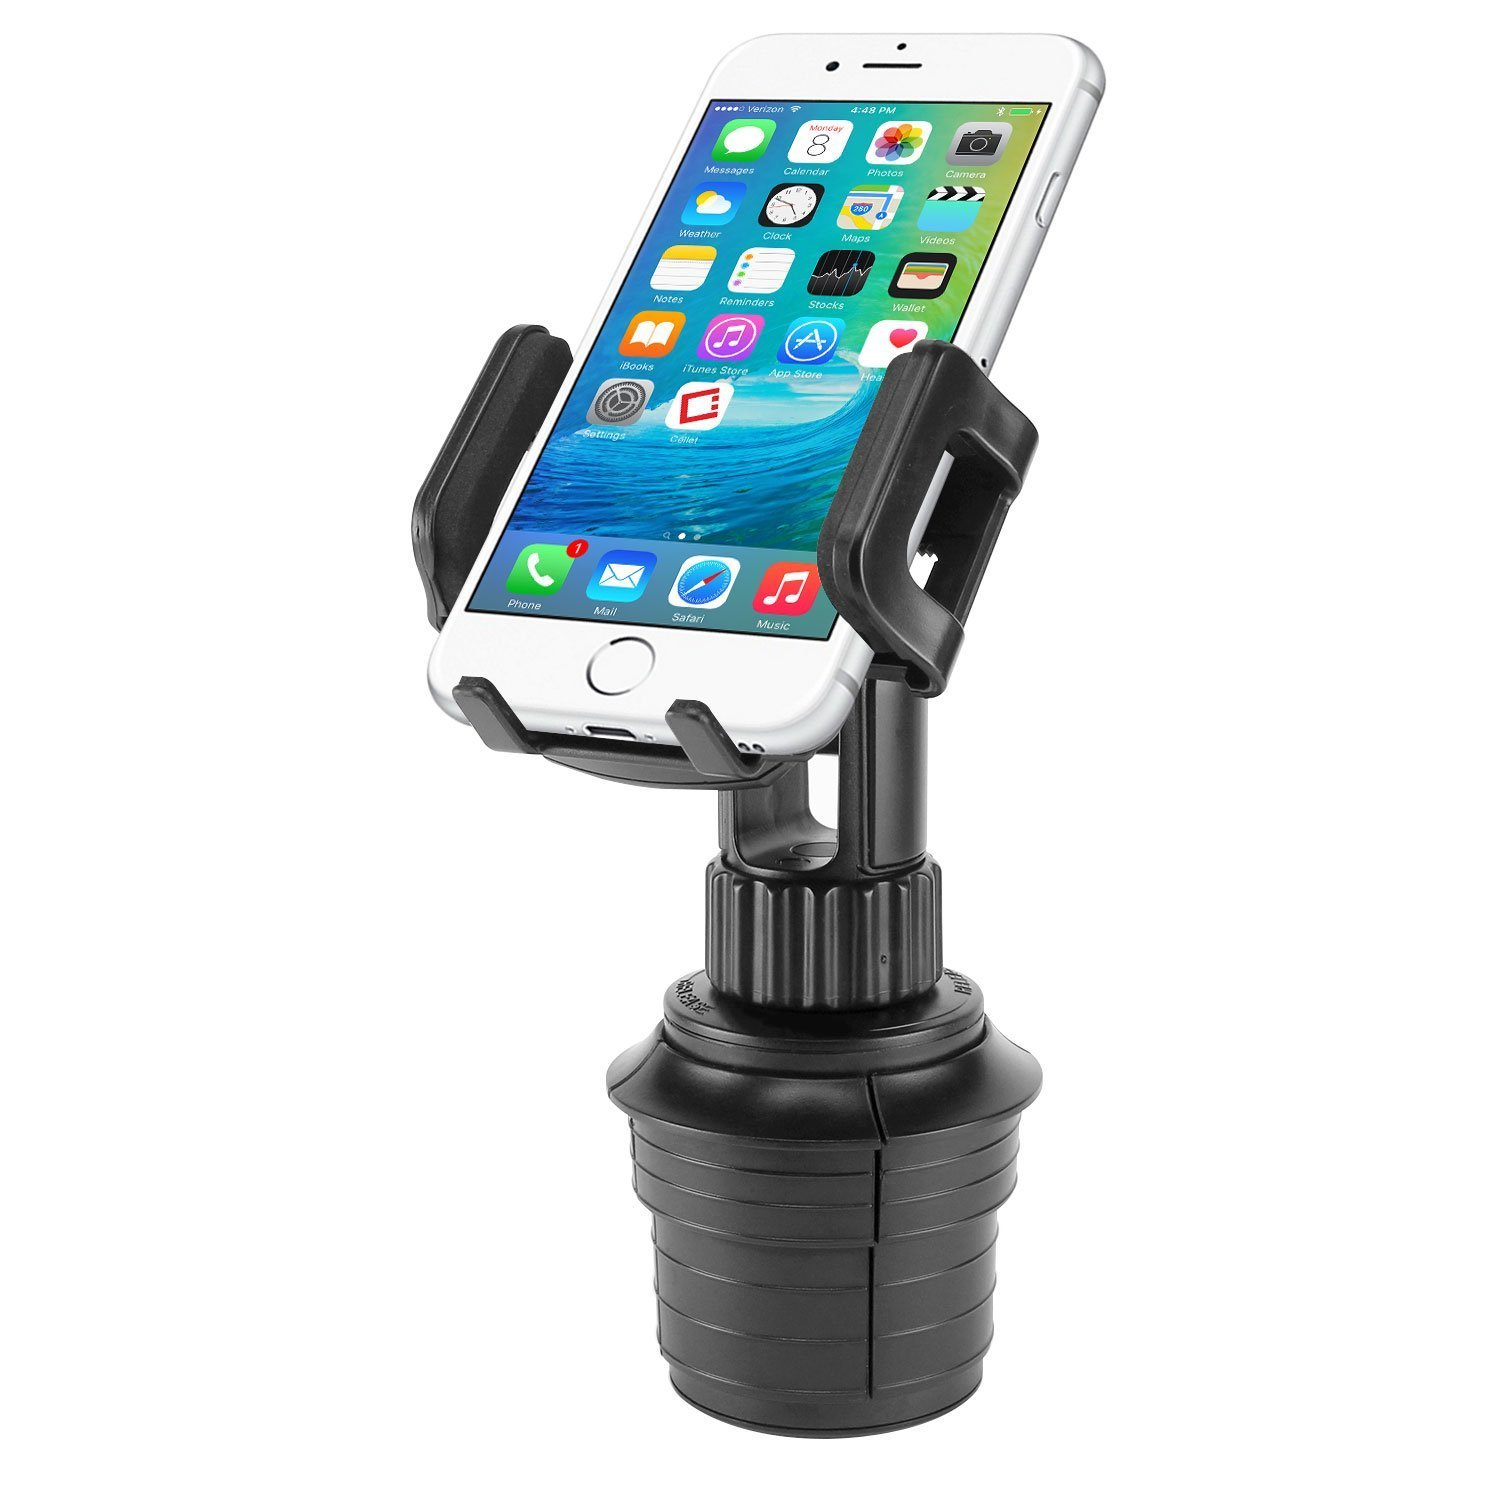 Mobile Phone Accessories Mobile Phone Holders & Stands Brave 1pcs Universal Car Phone Holder 360 Degree Flexible Dashboard Windshield Gps Mount Desk Table Cell Mobile Phone Holder Stand